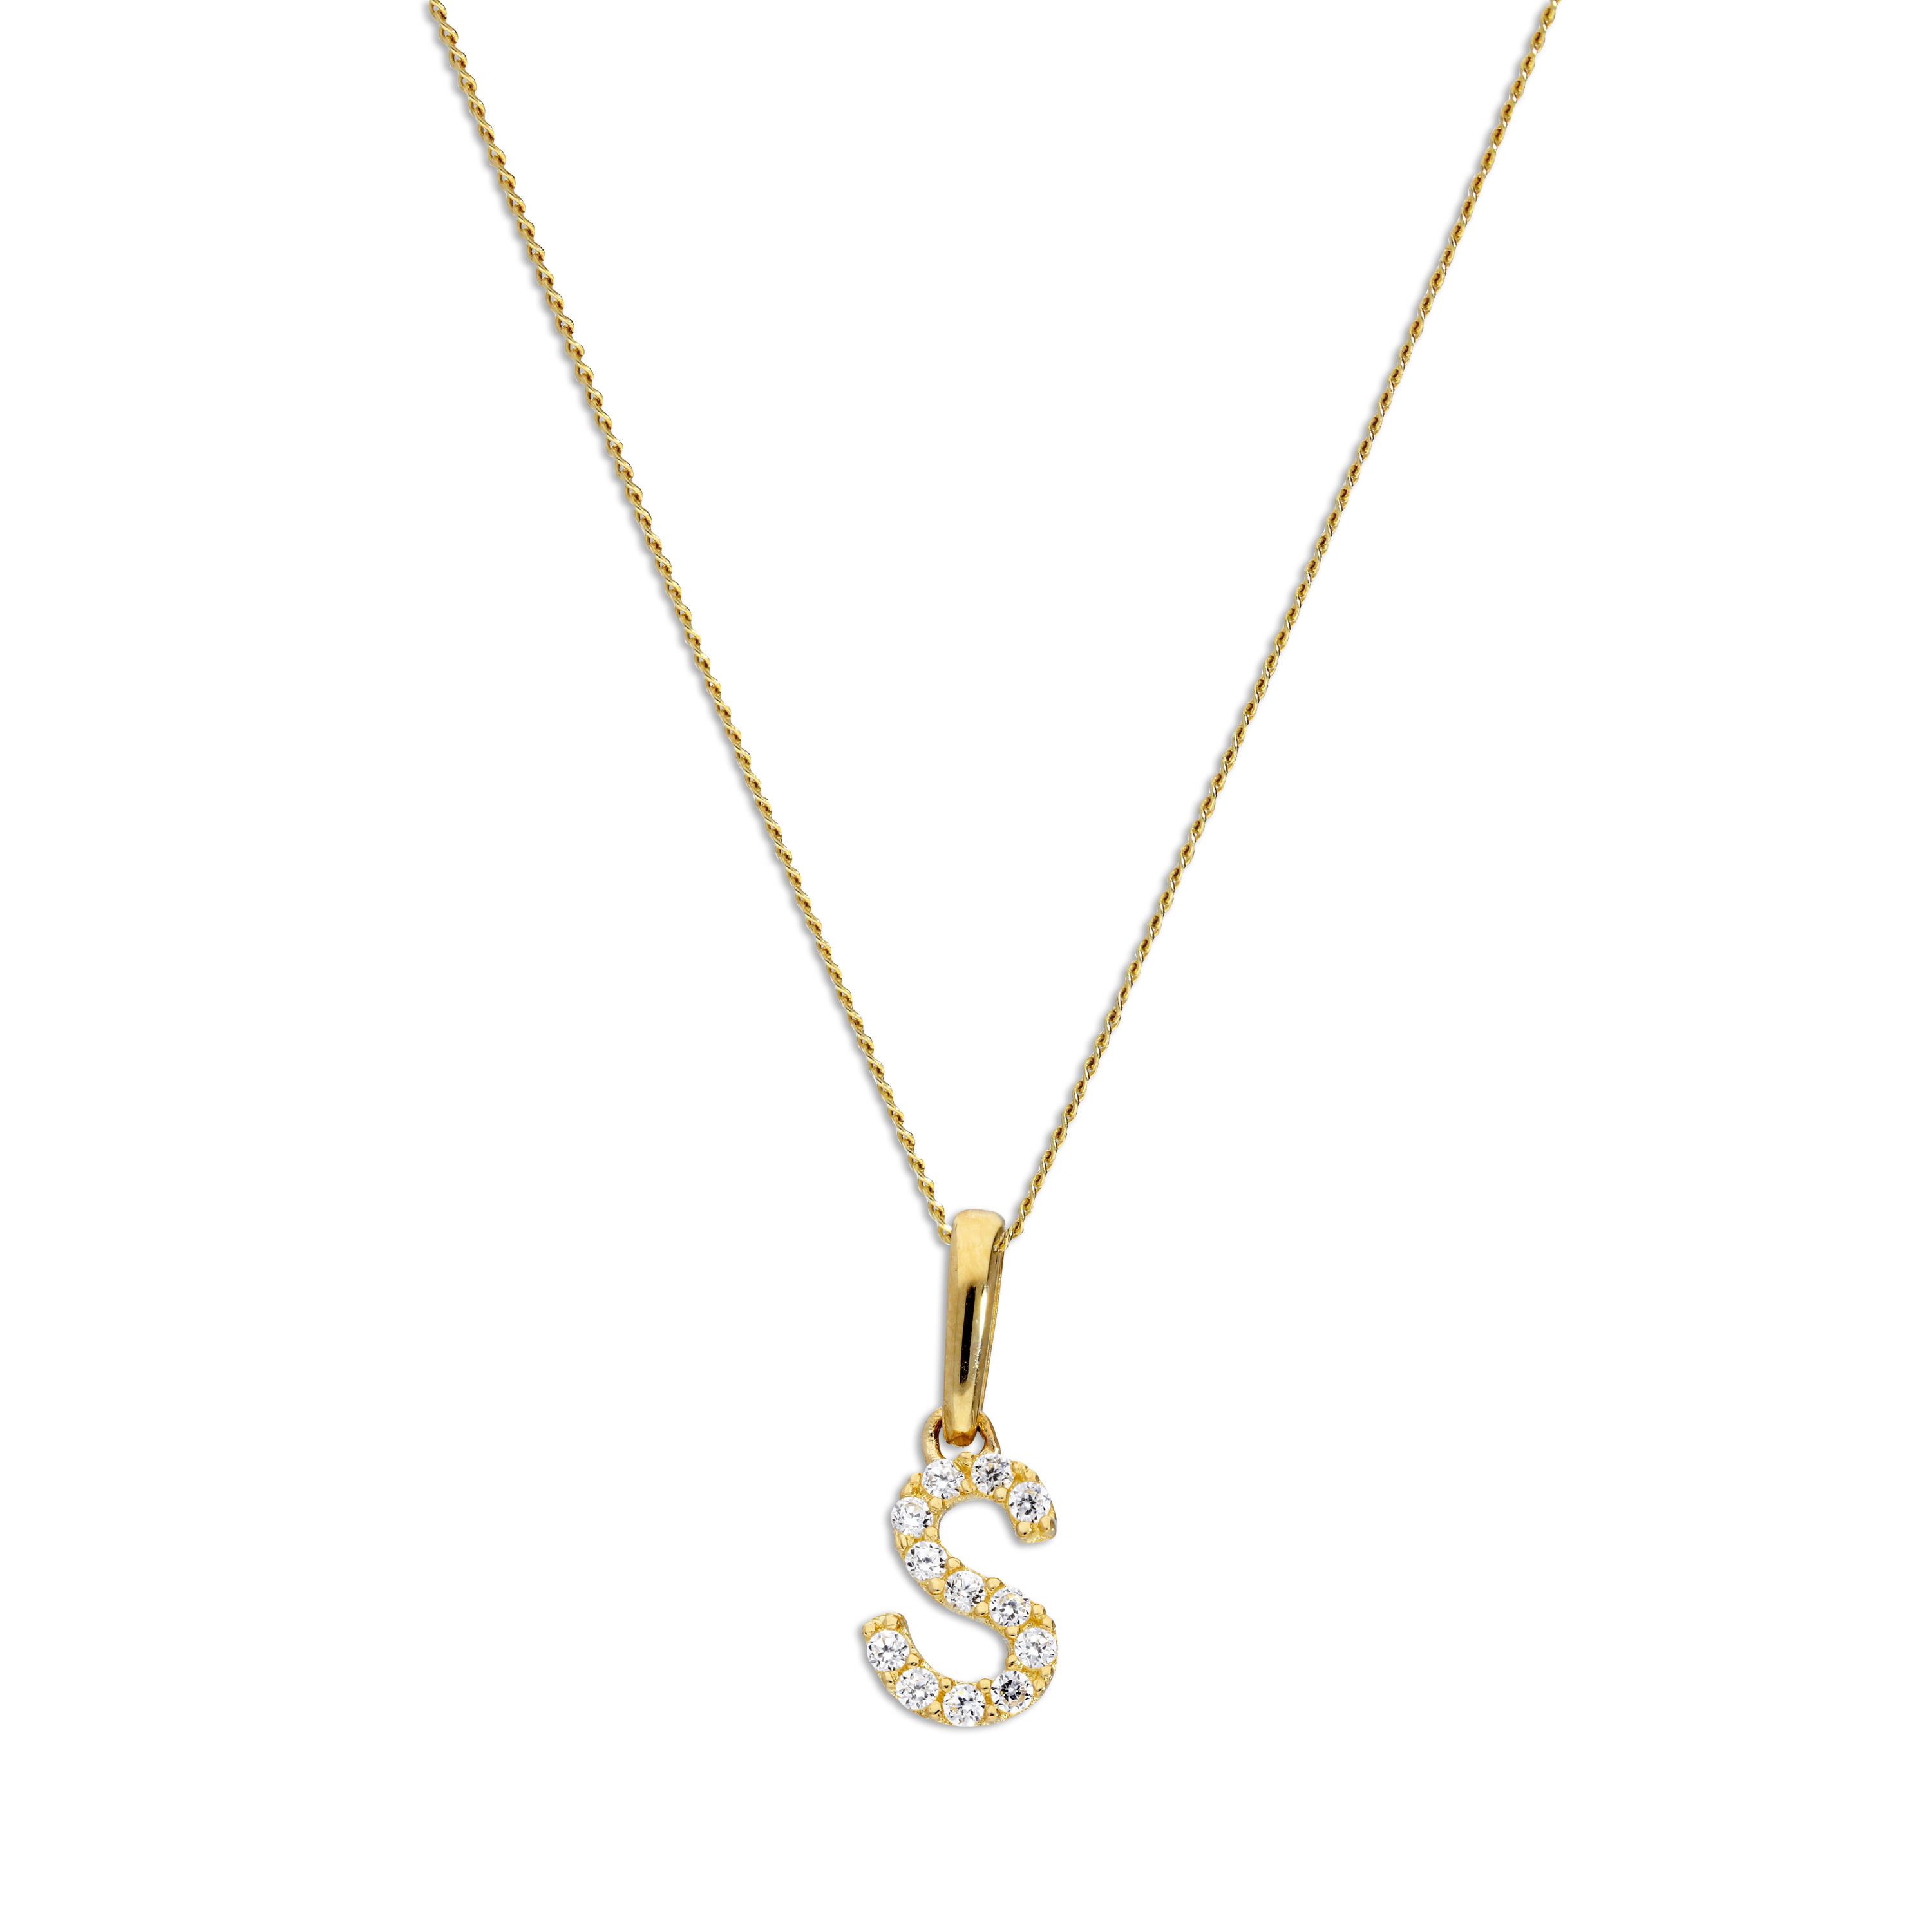 An image of 9ct Gold Clear CZ Crystal Script Alphabet Letter S Necklace 16 20 Inches